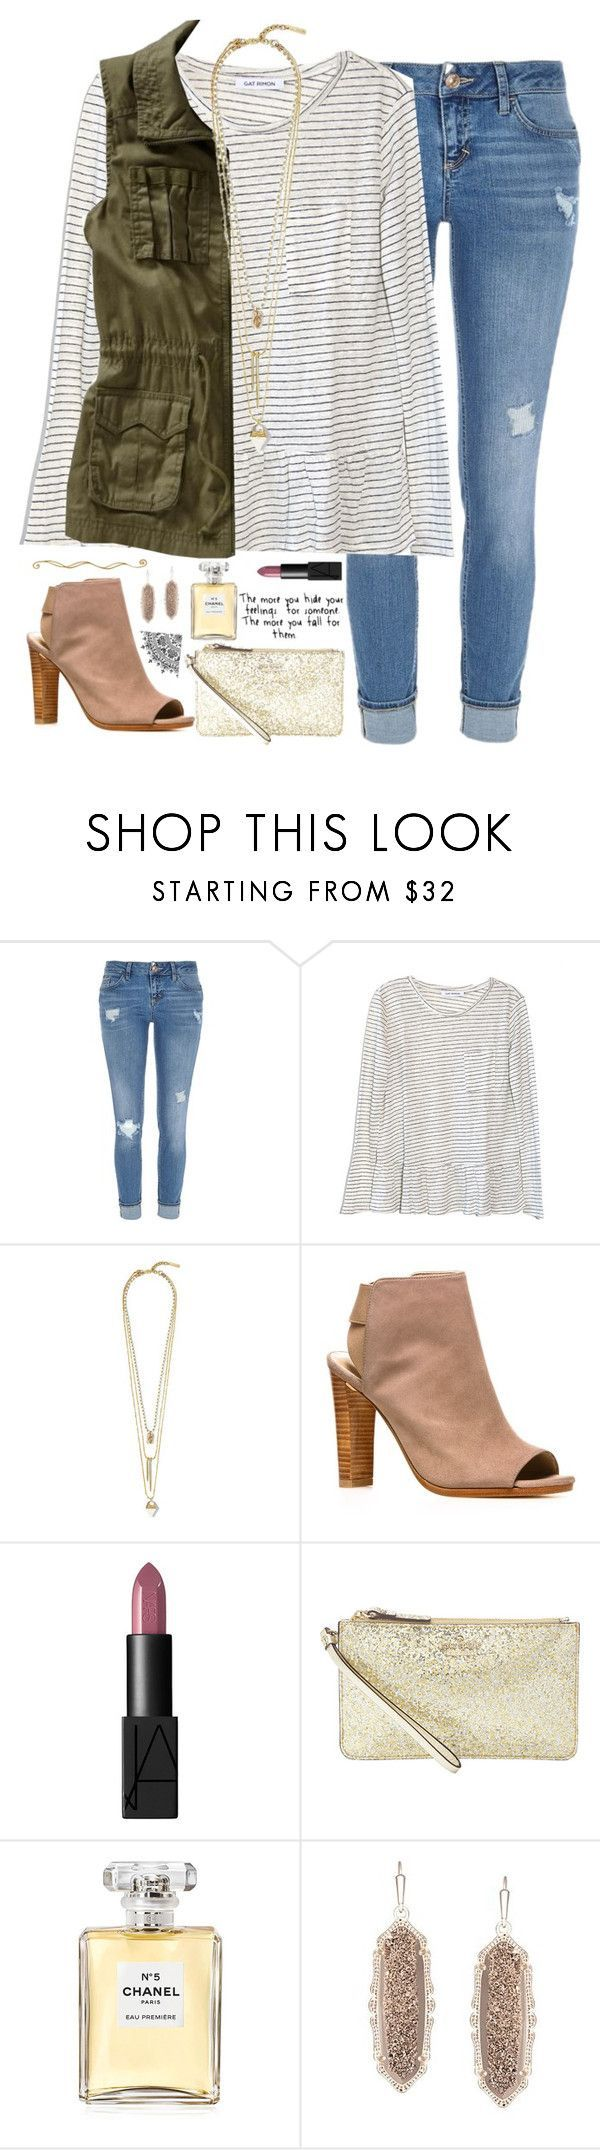 """""""be with someone that loves you so much, they'll put you on their shoulders just so you can get a better view."""" by kaley-ii ❤️ liked on Polyvore featuring River Island, Gat Rimon, Old Navy, Vince Camuto, Stuart Weitzman, NARS Cosmetics, Kate Spade, Chanel and Kendra Scott"""